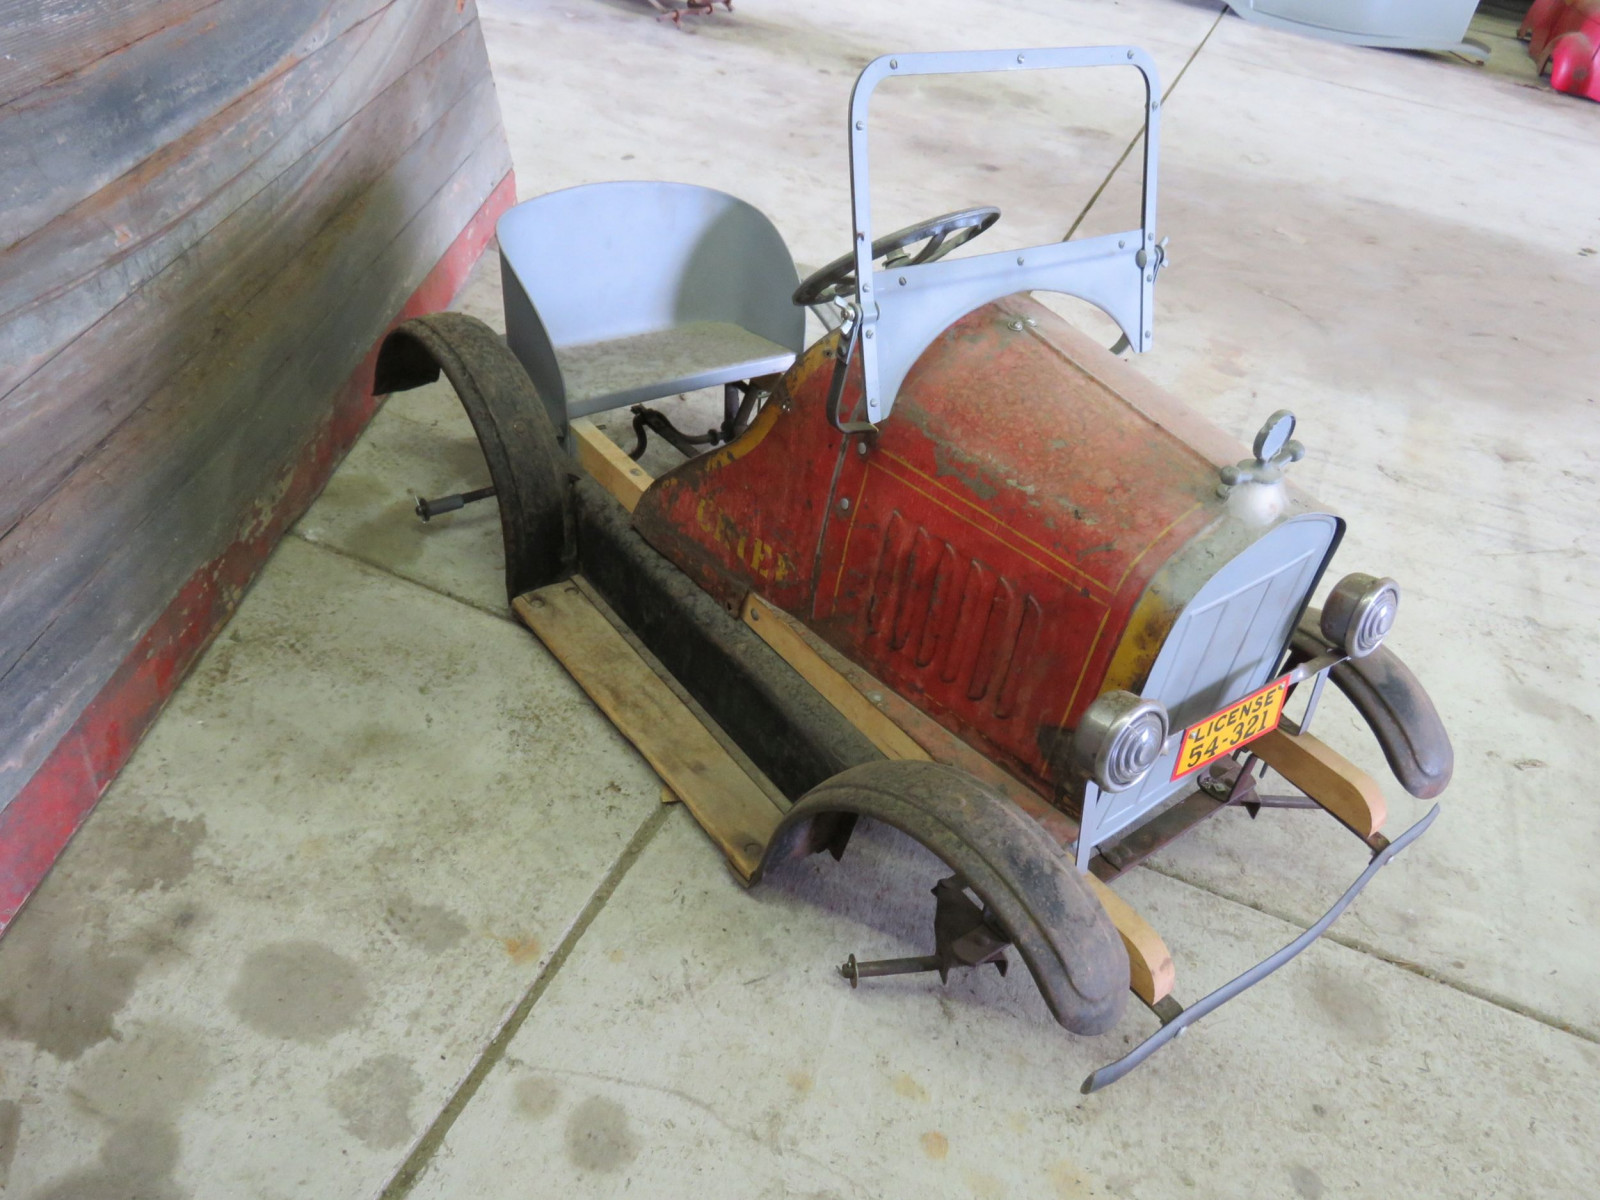 Rare SteelCraft Fire chief Pedal Car Project - Image 3